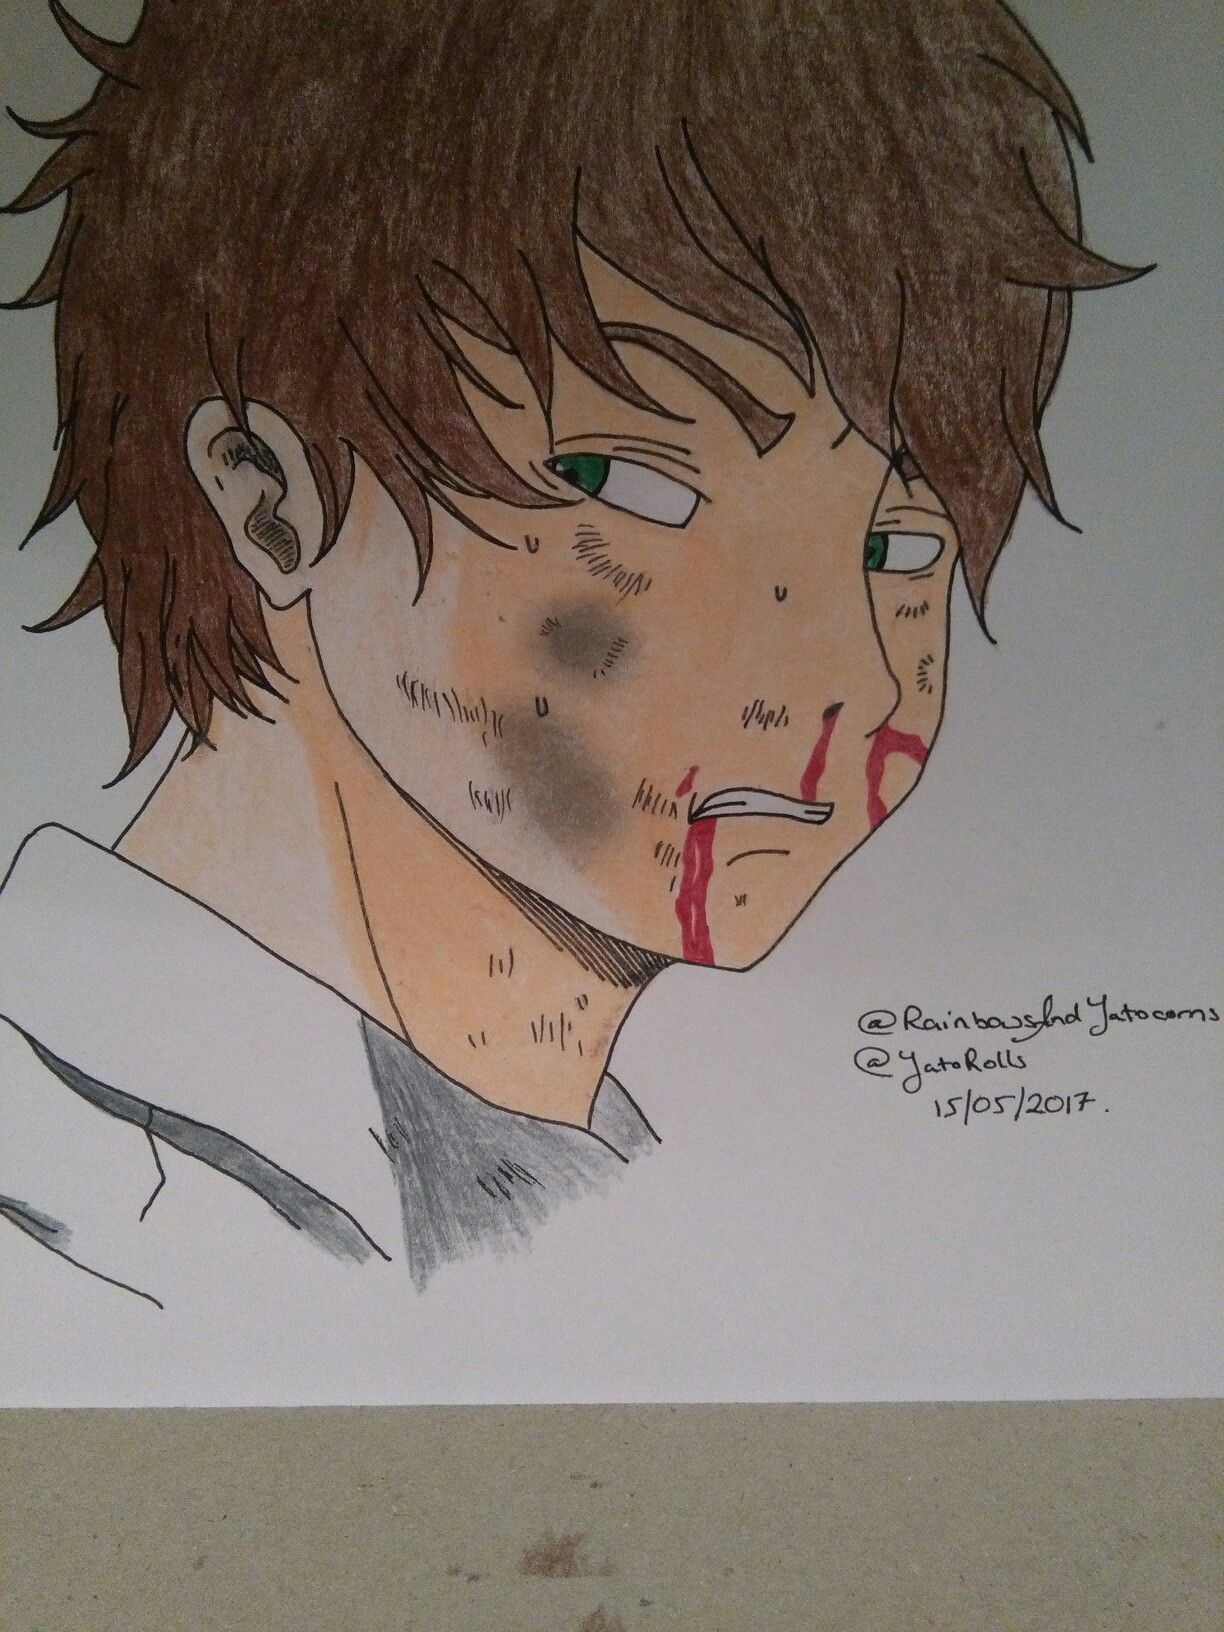 Finally finished college so the drawings are flowing again yay! Go follow my deviant art account @RainbowsAndYatocorns